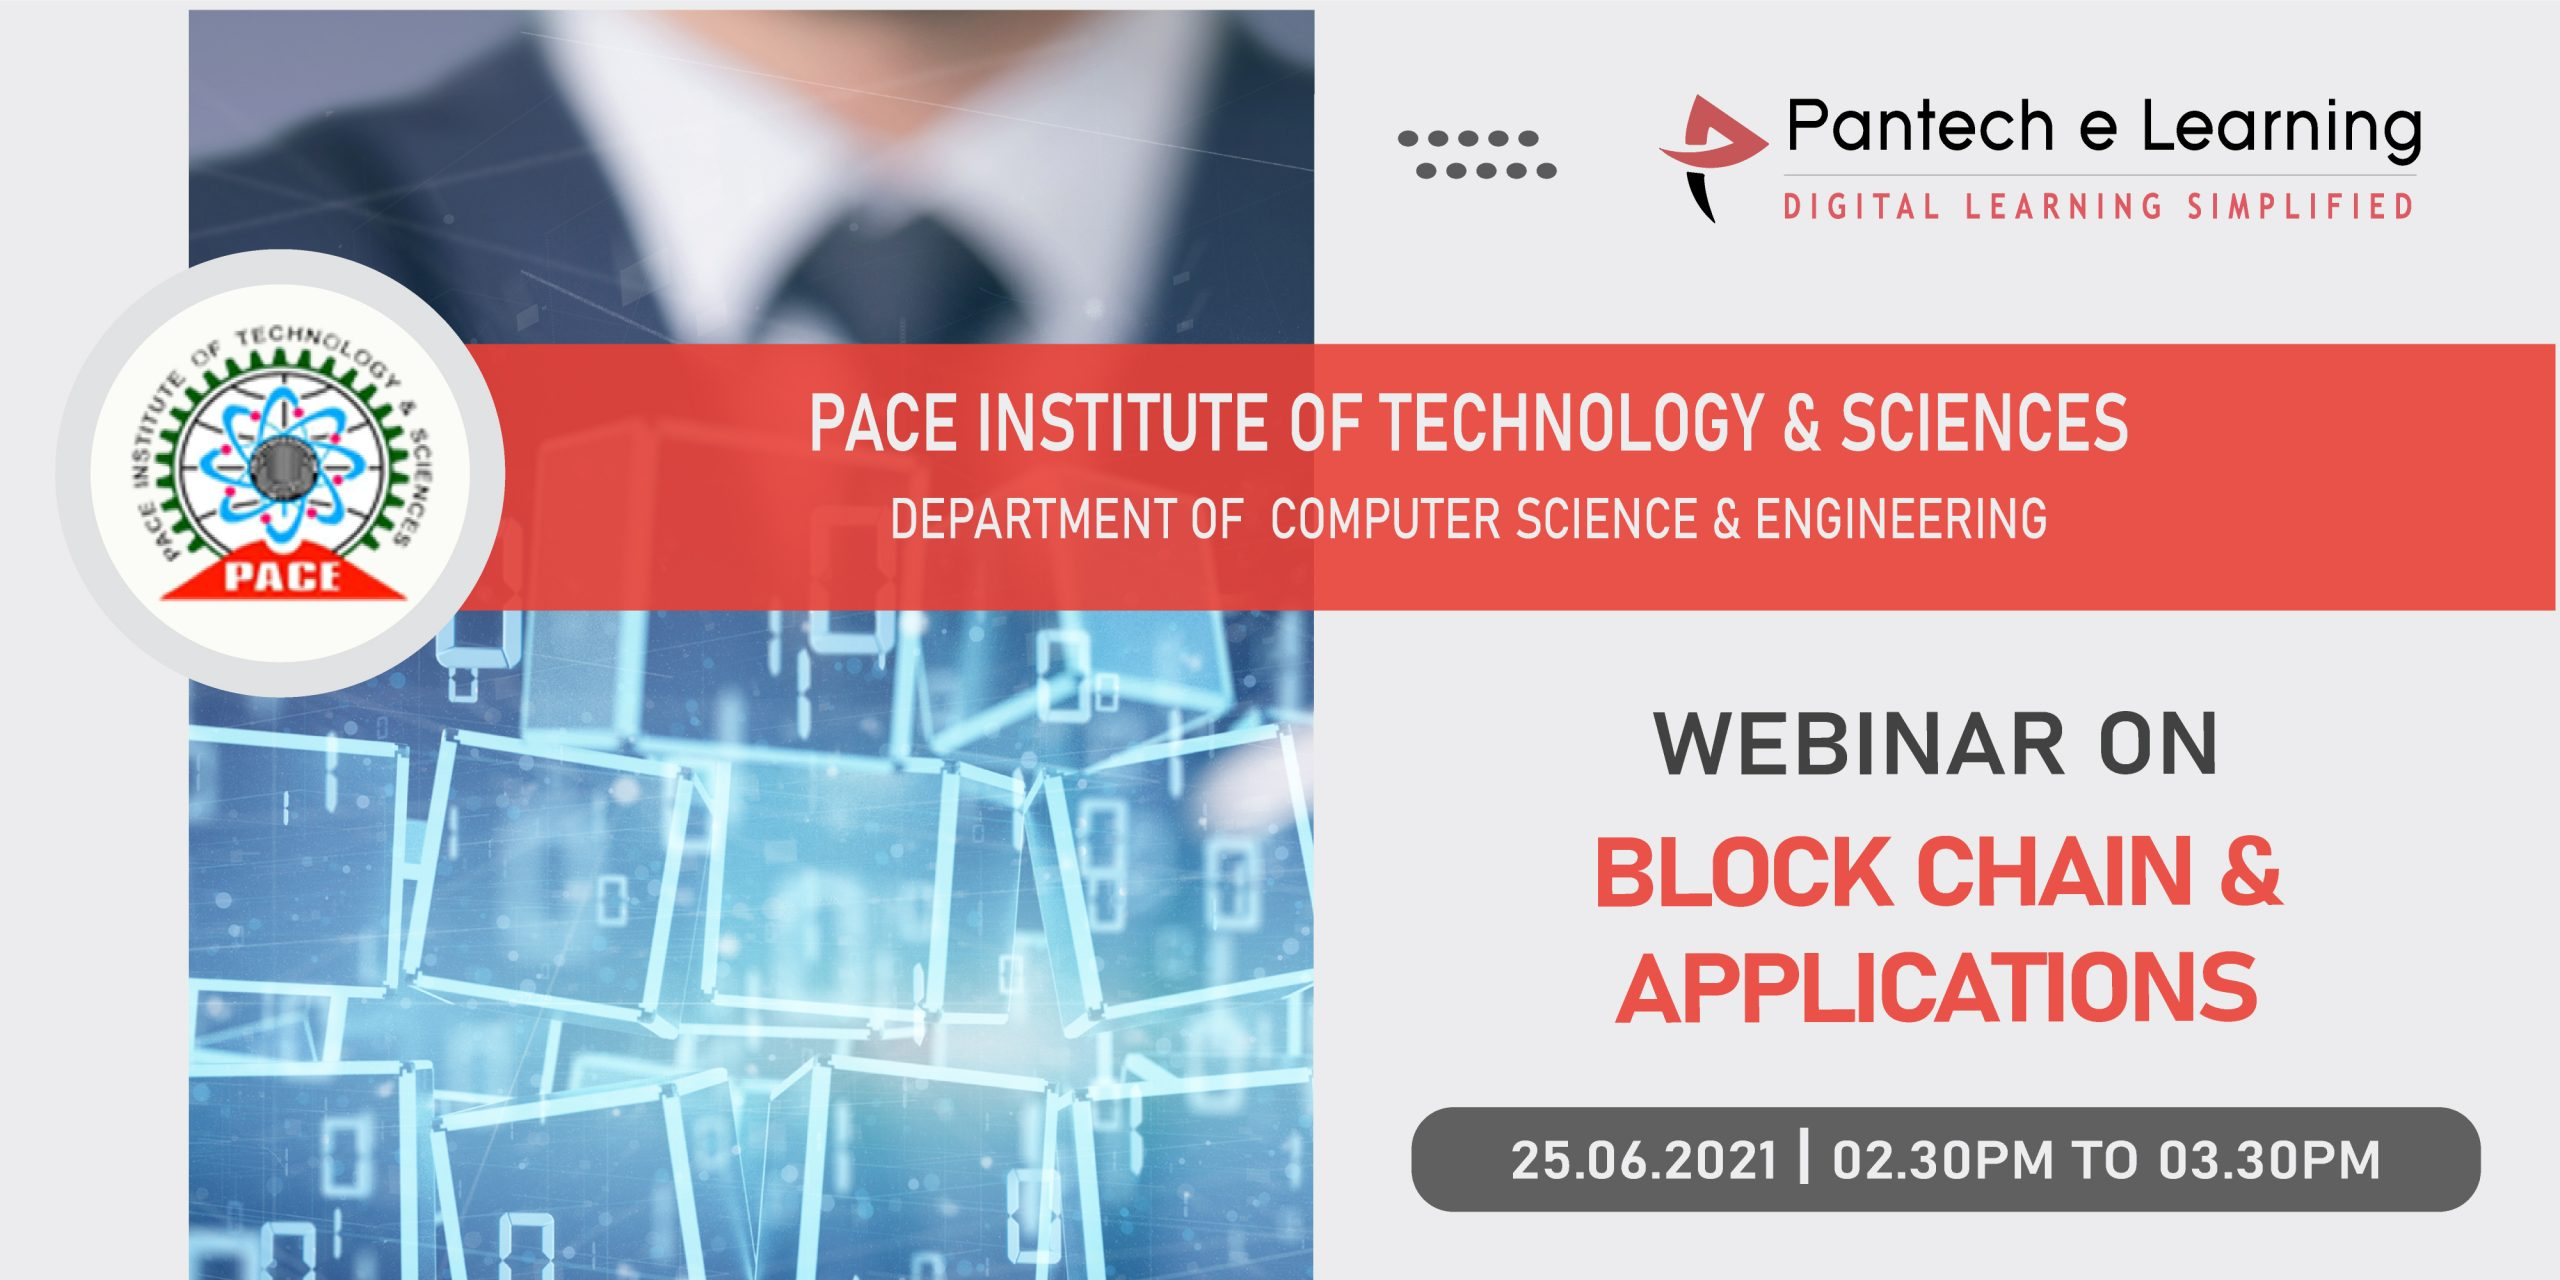 Blockchain applications Pace institute Pantech eLearning